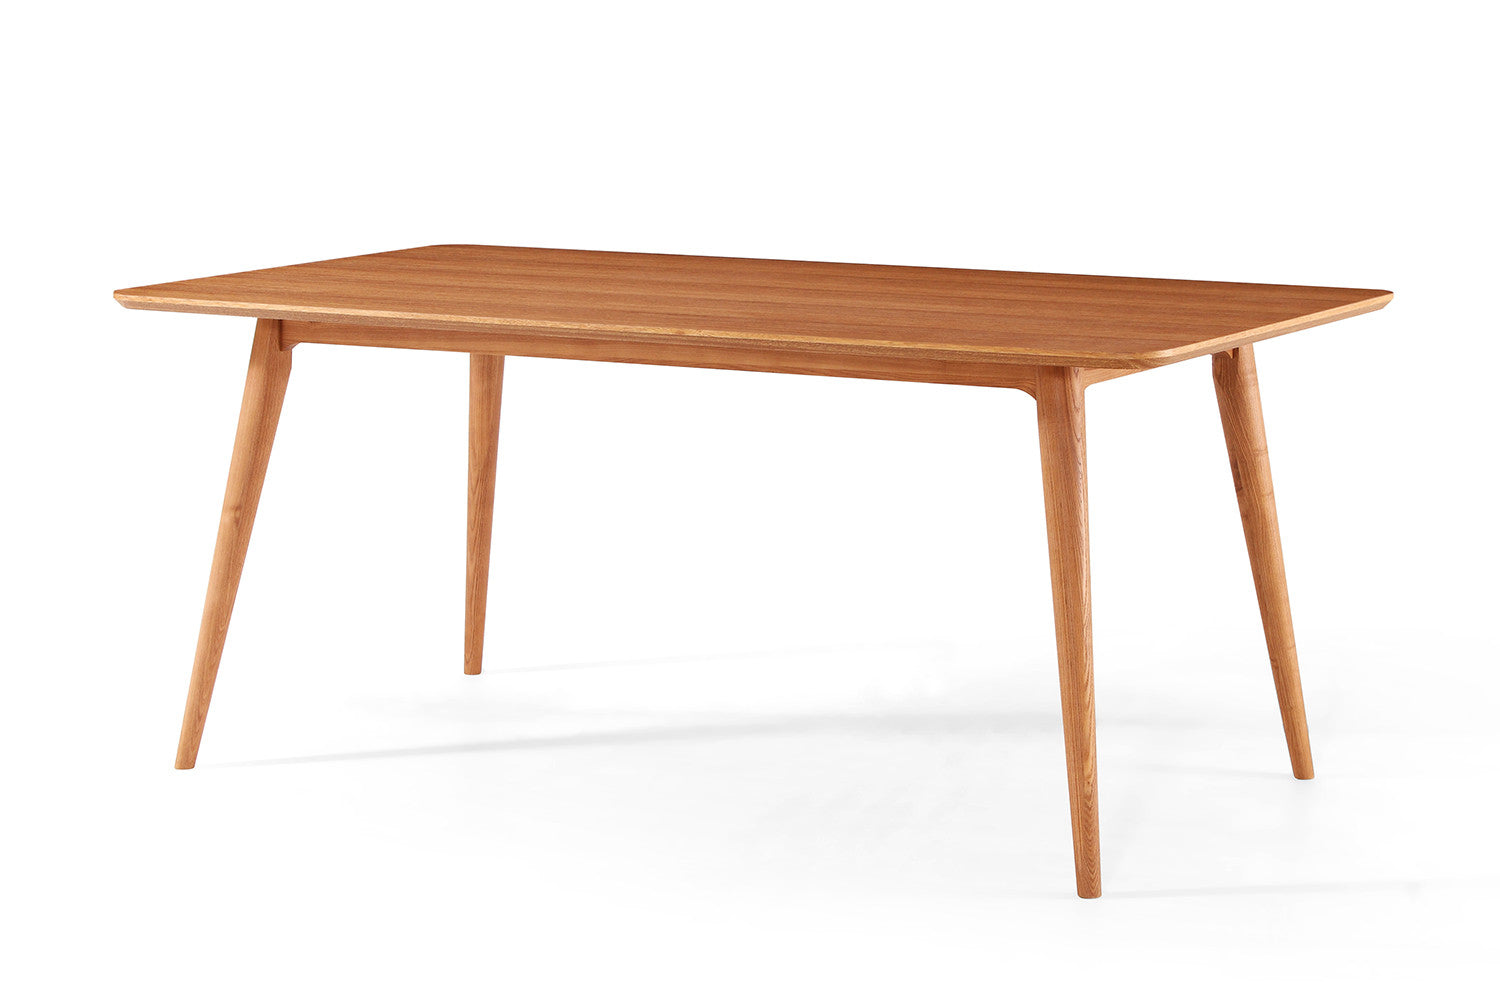 Table de salleà manger design en bois Julia Dewarens # Table Bois Design Scandinave